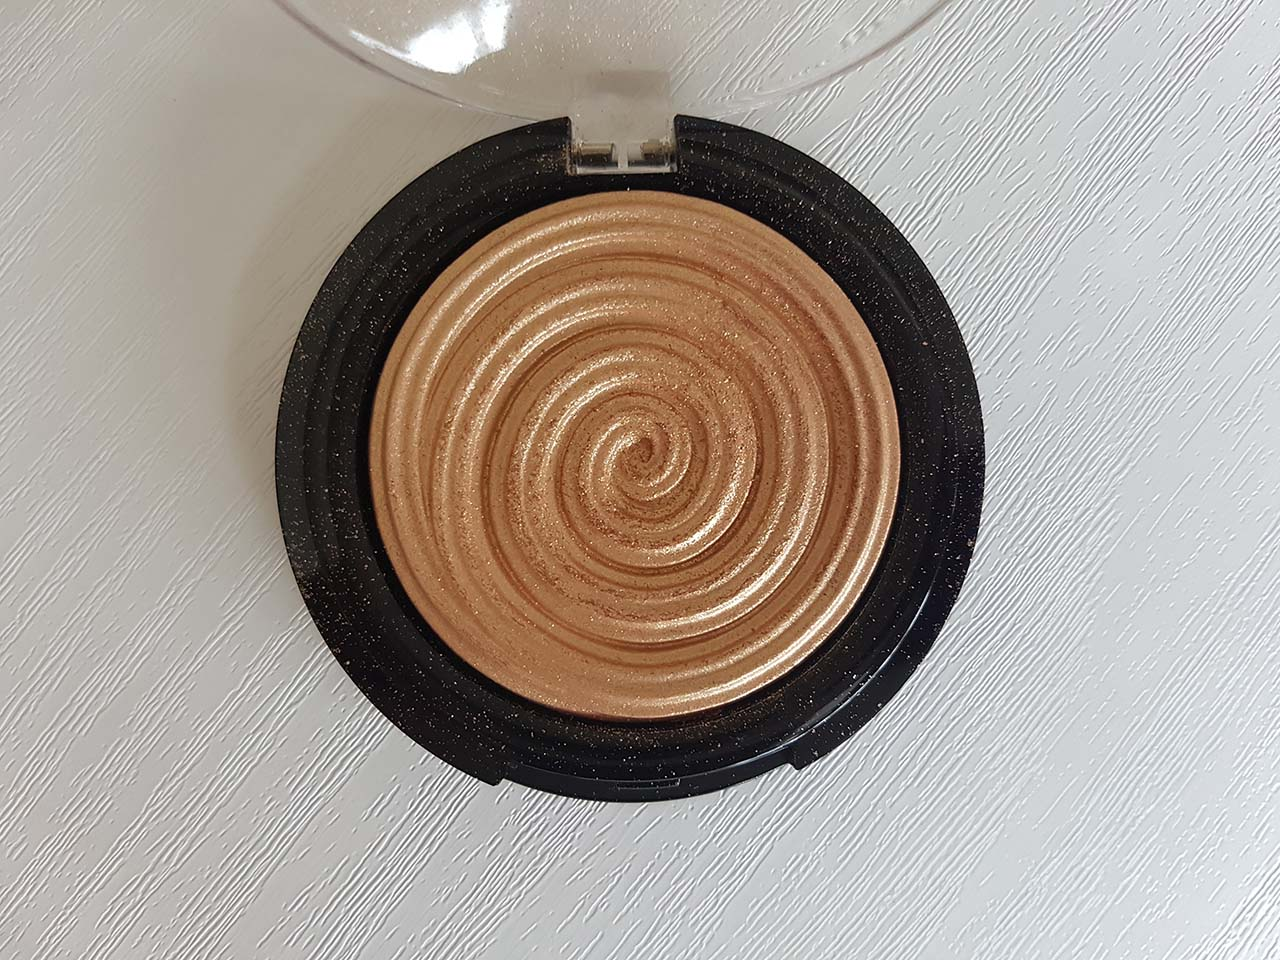 My Mixed Bag Beauty Haul: A Little of Everything - Laura Geller's Baked Gelato Swirl Illuminator: This is one of my favourite highlighters. Laura Geller is a brand I discovered this year and I am so happy I did because her makeup is excellent and affordable. This highlighter is called Gilded Honey and the result is a lovely burnished gold glow (see above swatch). The powder is set in the 'swirl' design but you only need to run a brush along the ridges to pick up a good amount of product and just one swipe gives high colour pay off. It can be as subtle or as strobe-like as you like and will work on most skin tones all year round. If you love highlighters you need to try this one.